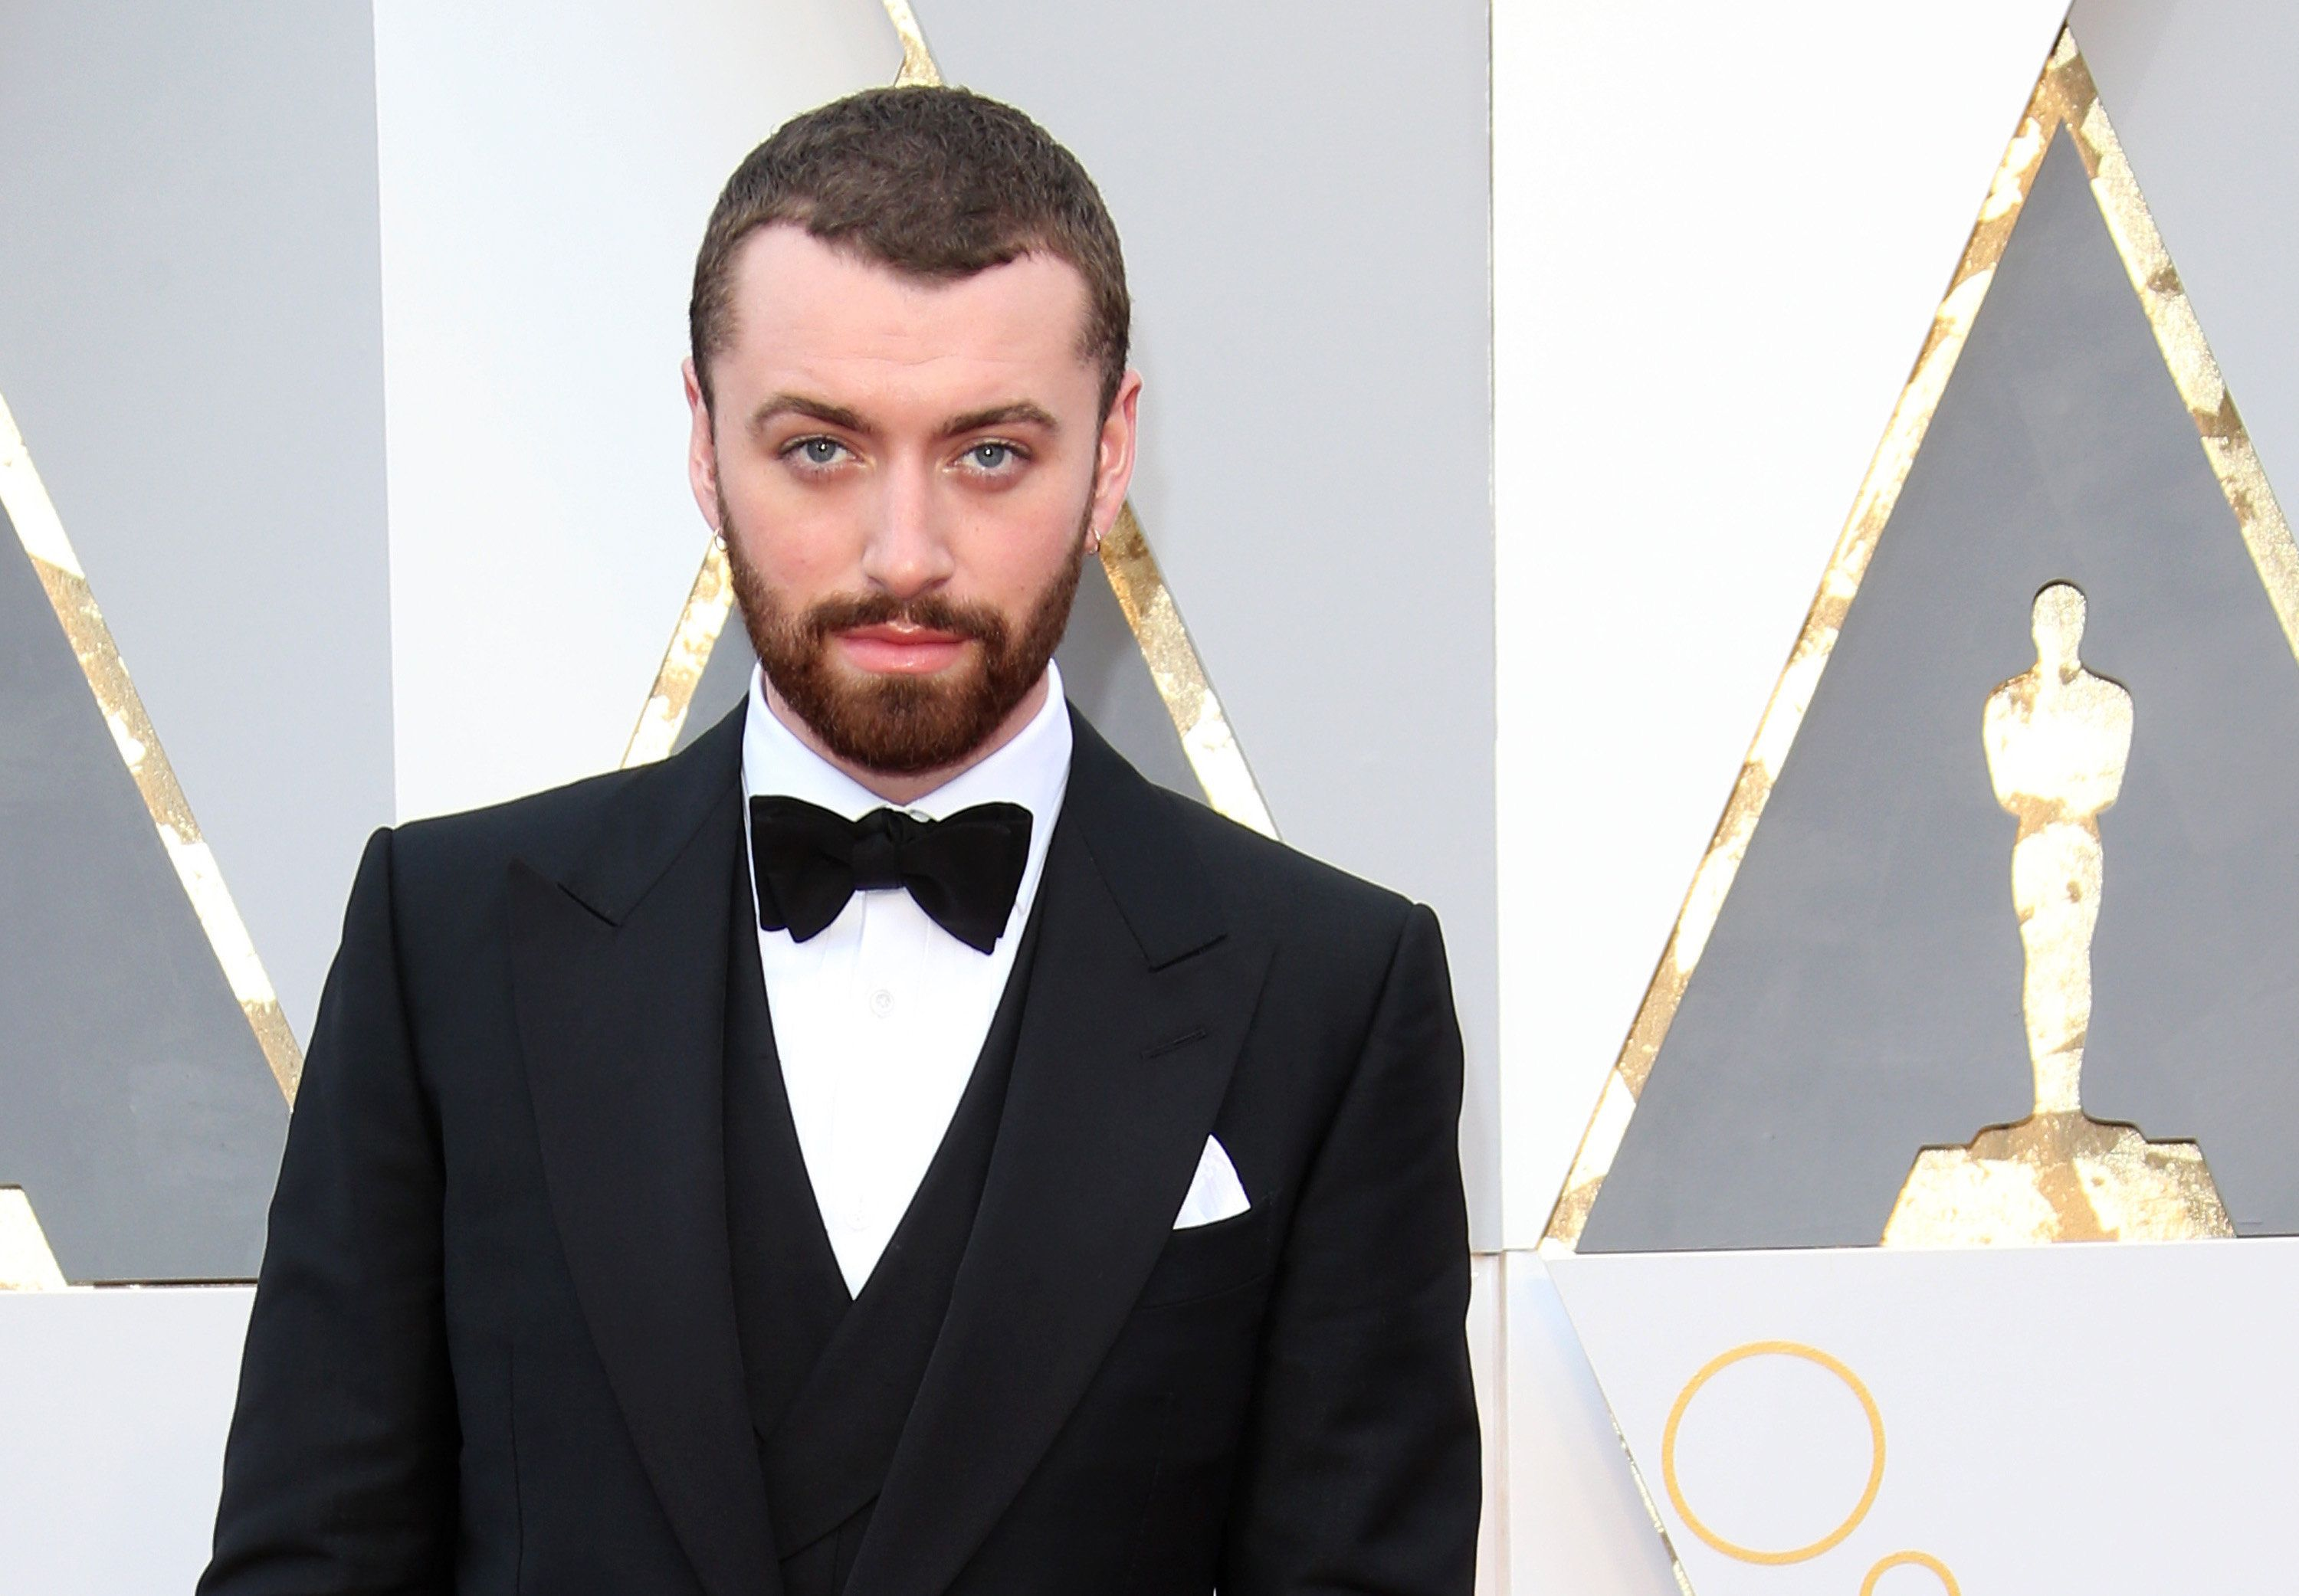 HOLLYWOOD, CA - FEBRUARY 28: Singer Sam Smith attends the 88th Annual Academy Awards at Hollywood & Highland Center on February 28, 2016 in Hollywood, California. (Photo by Dan MacMedan/WireImage)